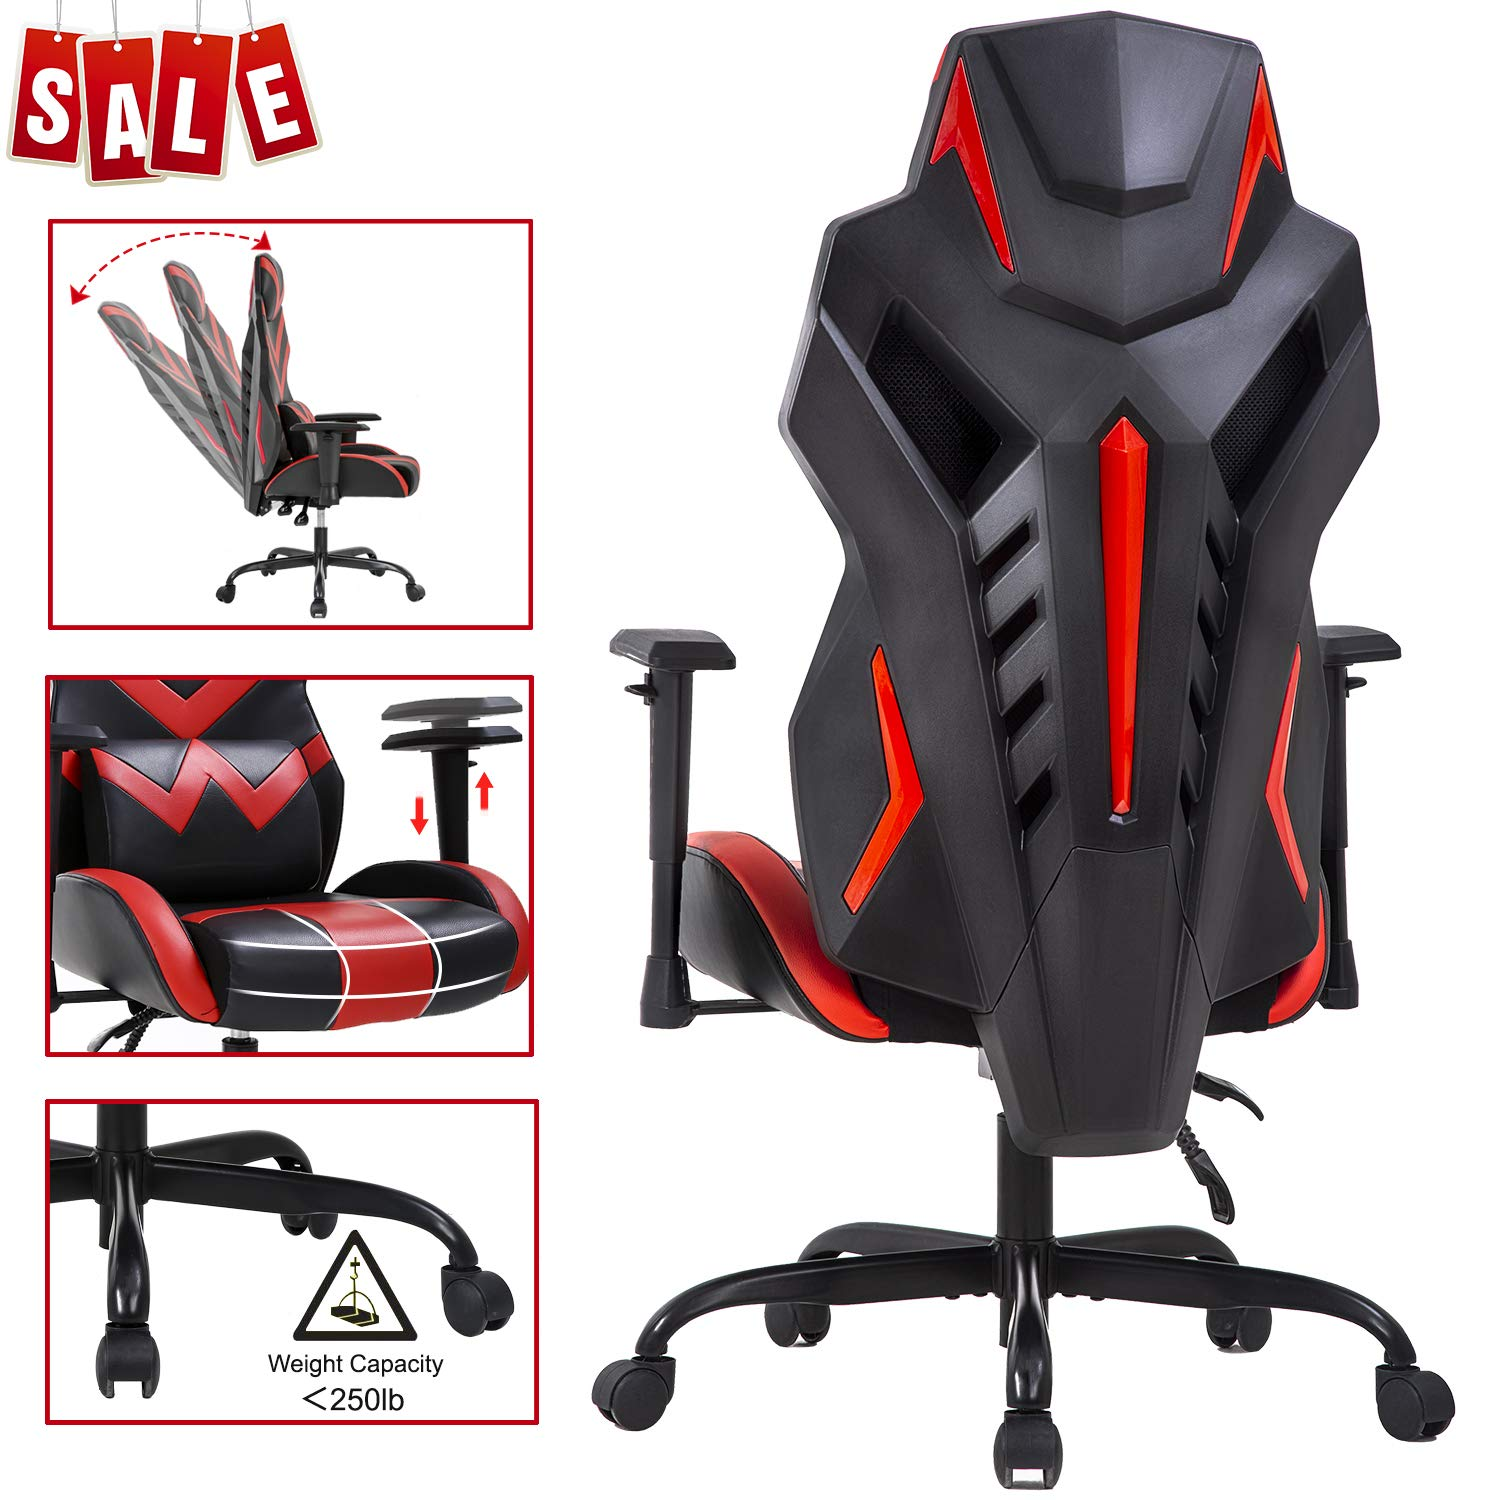 PC Gaming Chair Ergonomic Office Chair Desk Chair with Lumbar Support Arms Executive Computer Chair Rolling Swivel Task Chair for Back Pain, Red by BestOffice